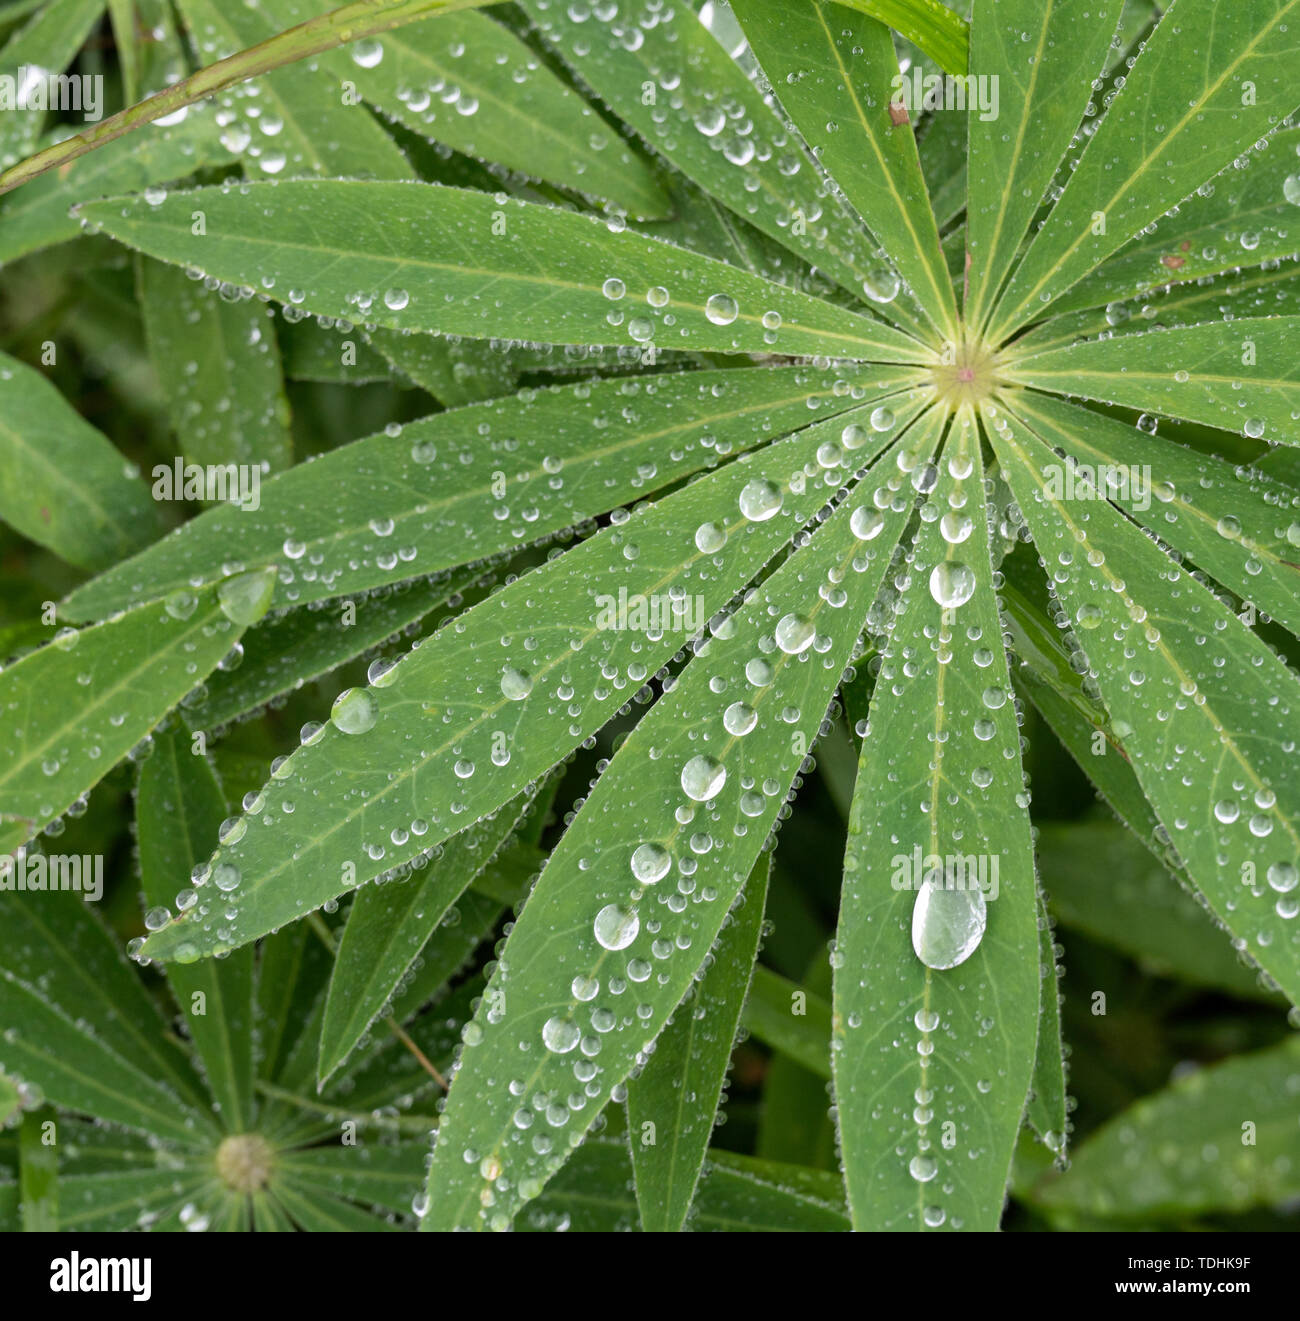 Closeup of lupine leafs and water drops. Latin name: Lupinus wolfish - Stock Image